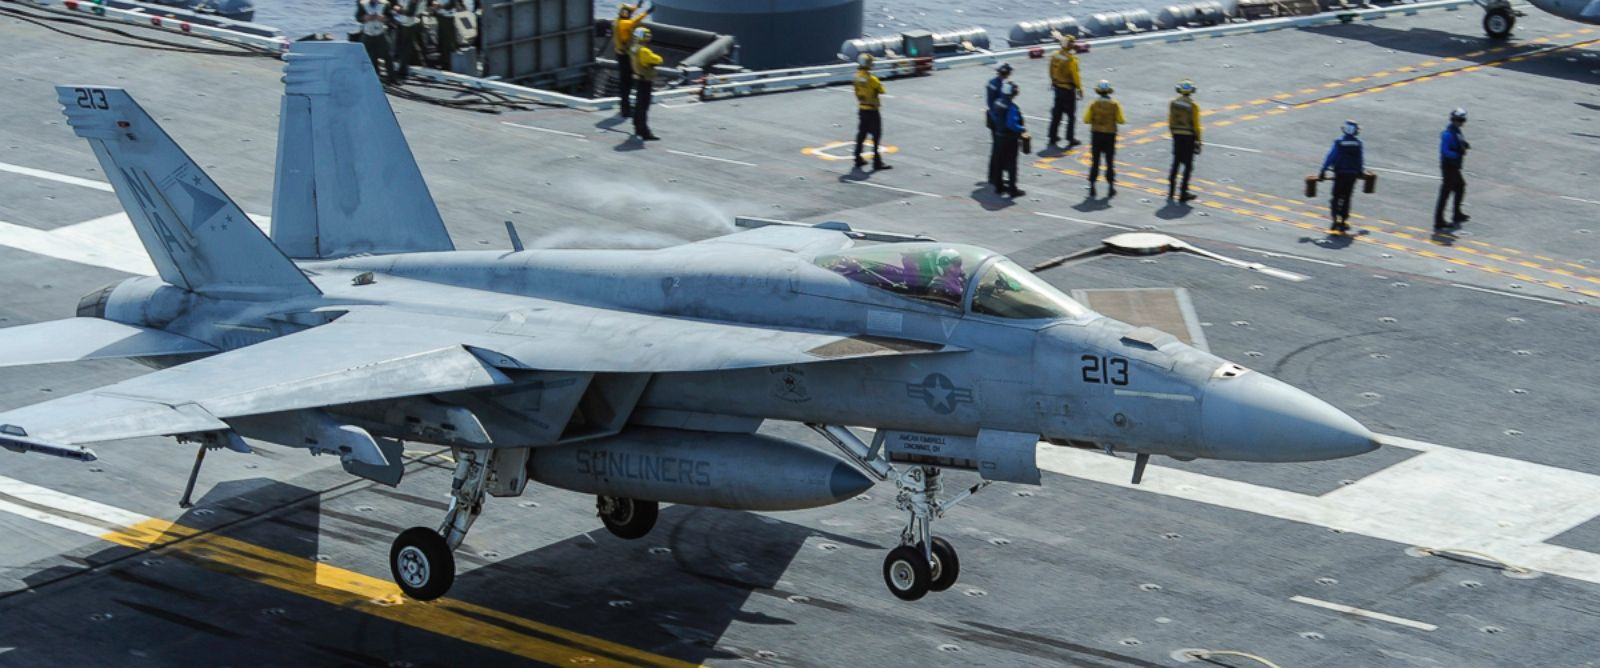 PHOTO: A file photo from the U.S. Navy shows an F/A-18E Super Hornet landing on the deck of the aircraft carrier USS Carl Vinson on Aug. 23, 2014.